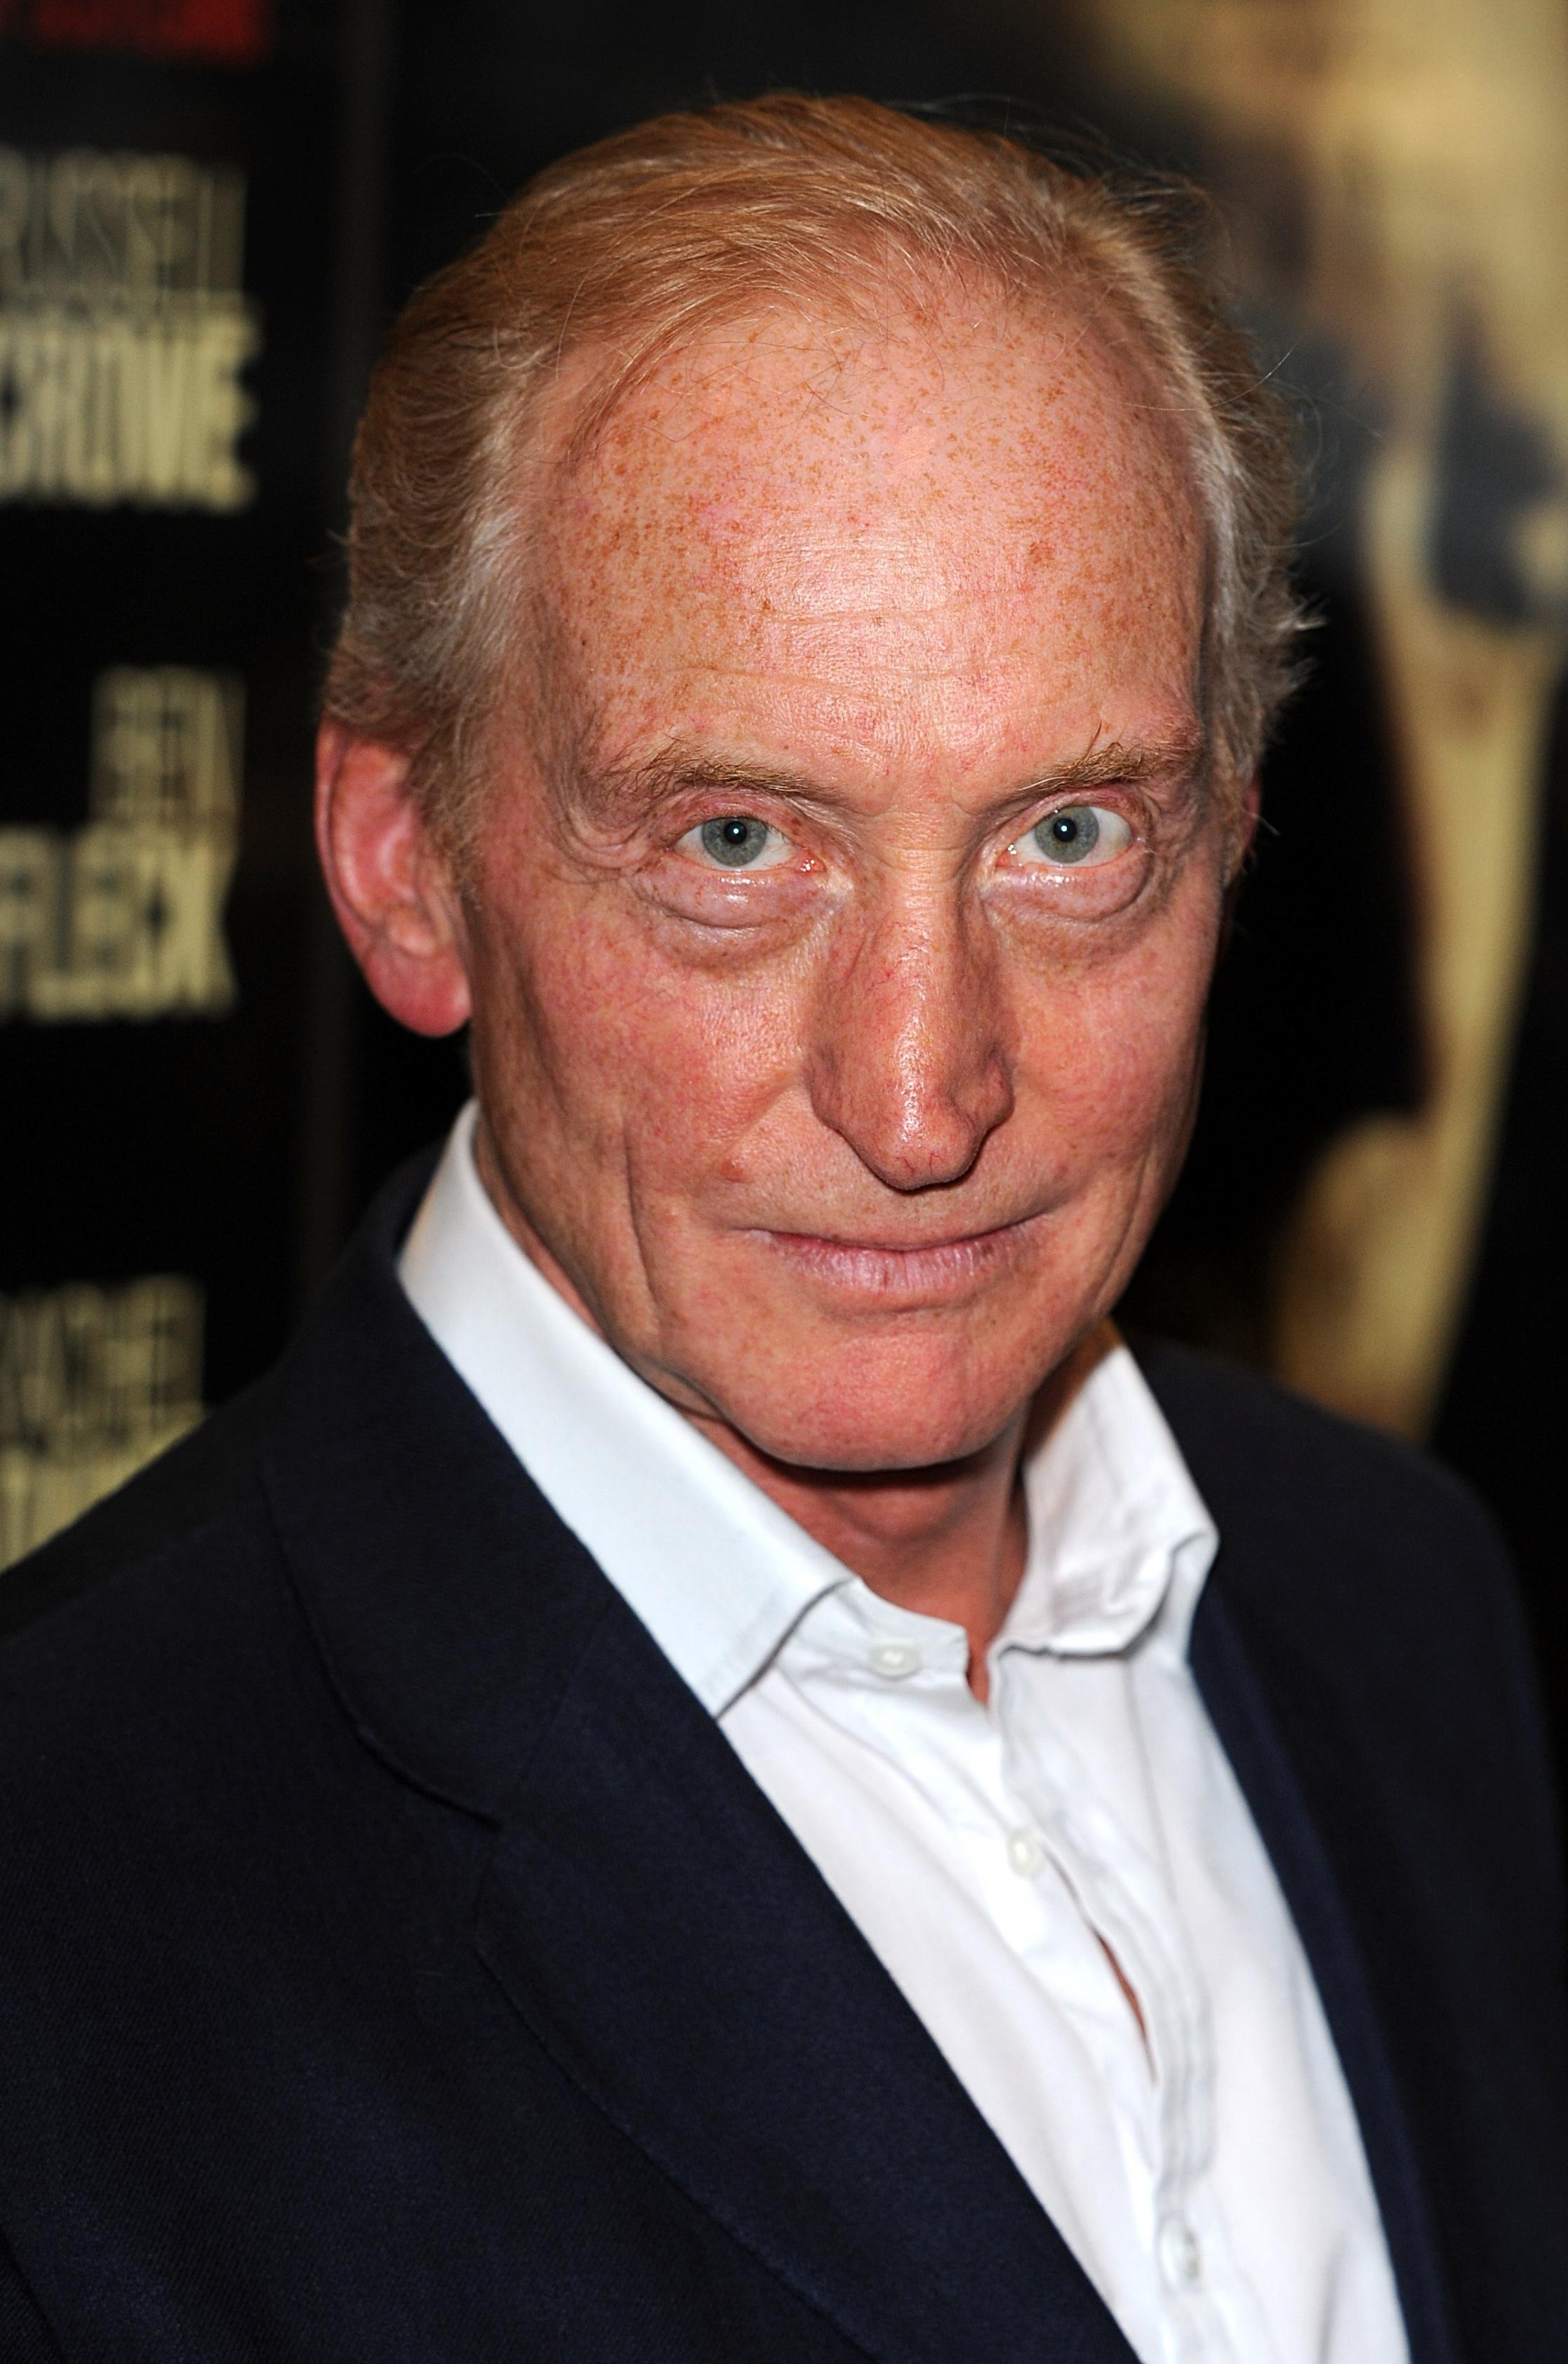 The 71-year old son of father Walter Dance and mother Eleanor Dance, 190 cm tall Charles Dance in 2018 photo